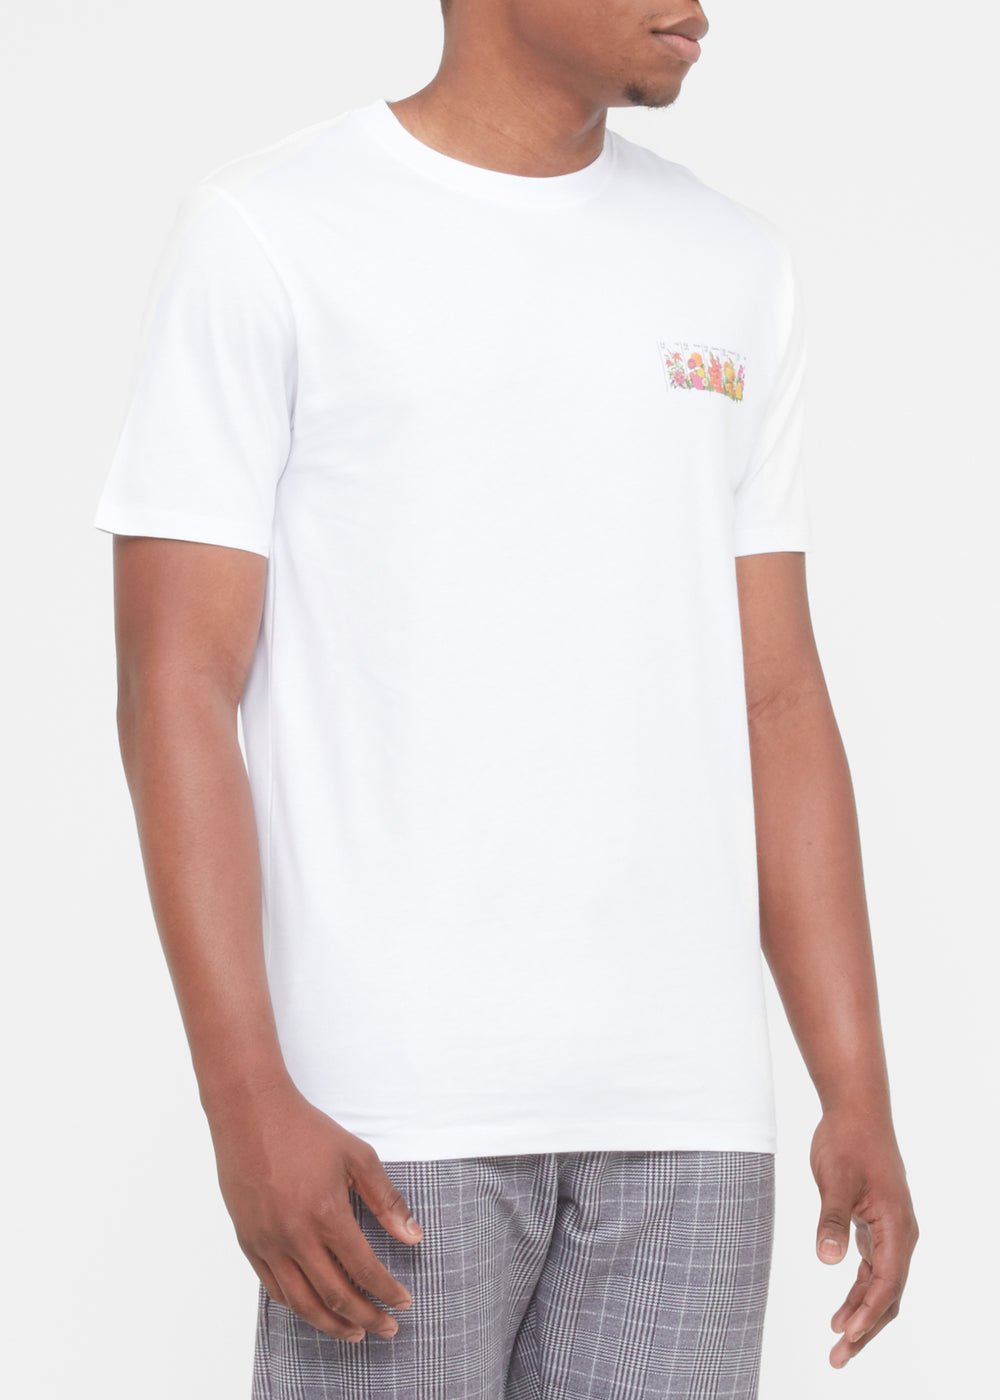 soul-land-soulland-rossell-tee-1000-rossell-wht-wht-2